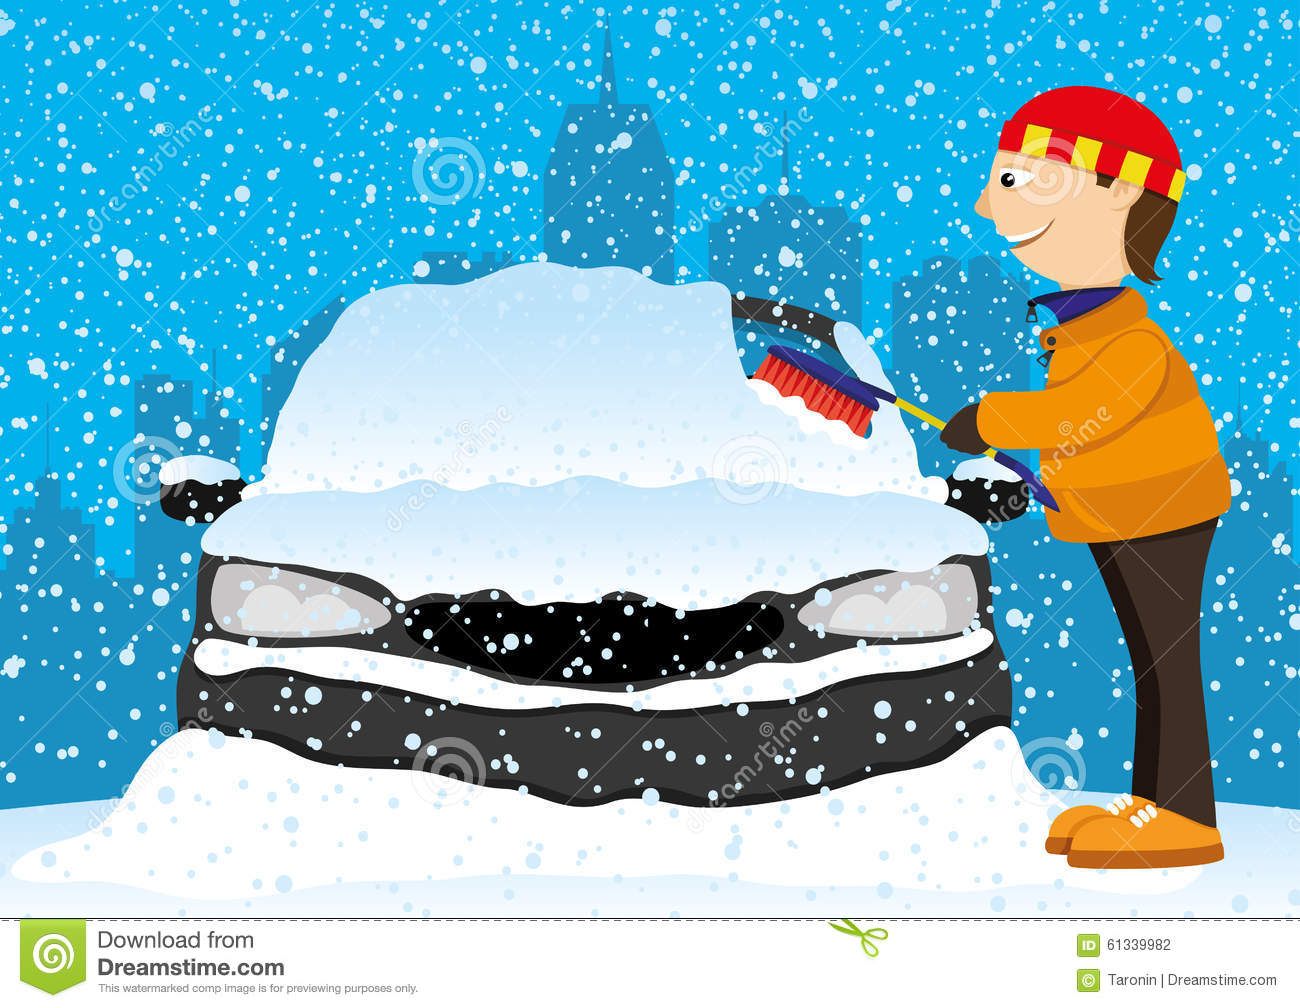 Car with snow car clipart transparent library Car In Snow Cartoon Stock Photography - Image: 17587852 transparent library